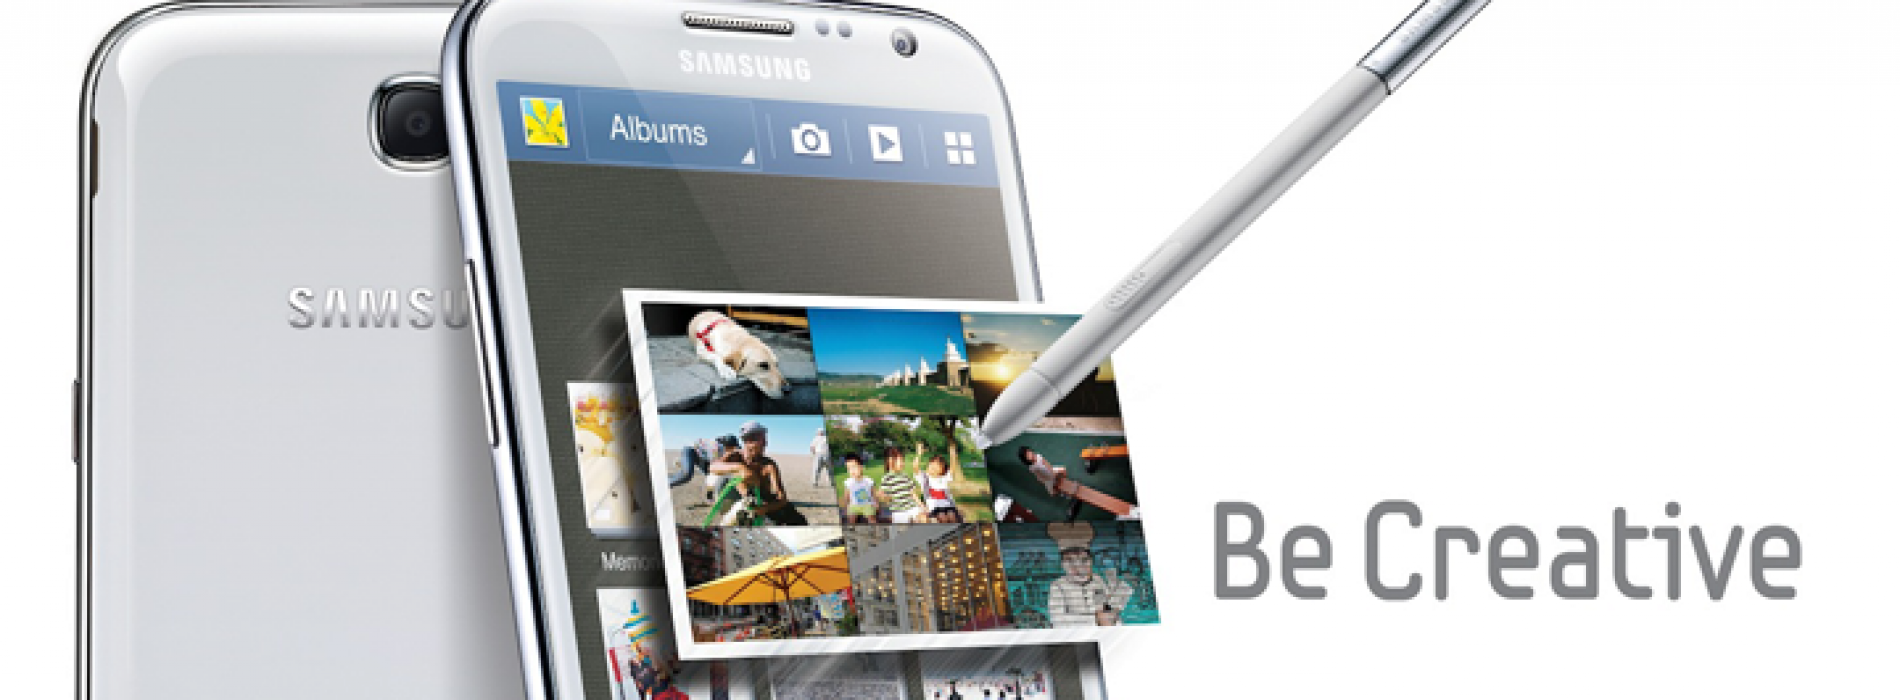 Samsung Galaxy Note II Gallery